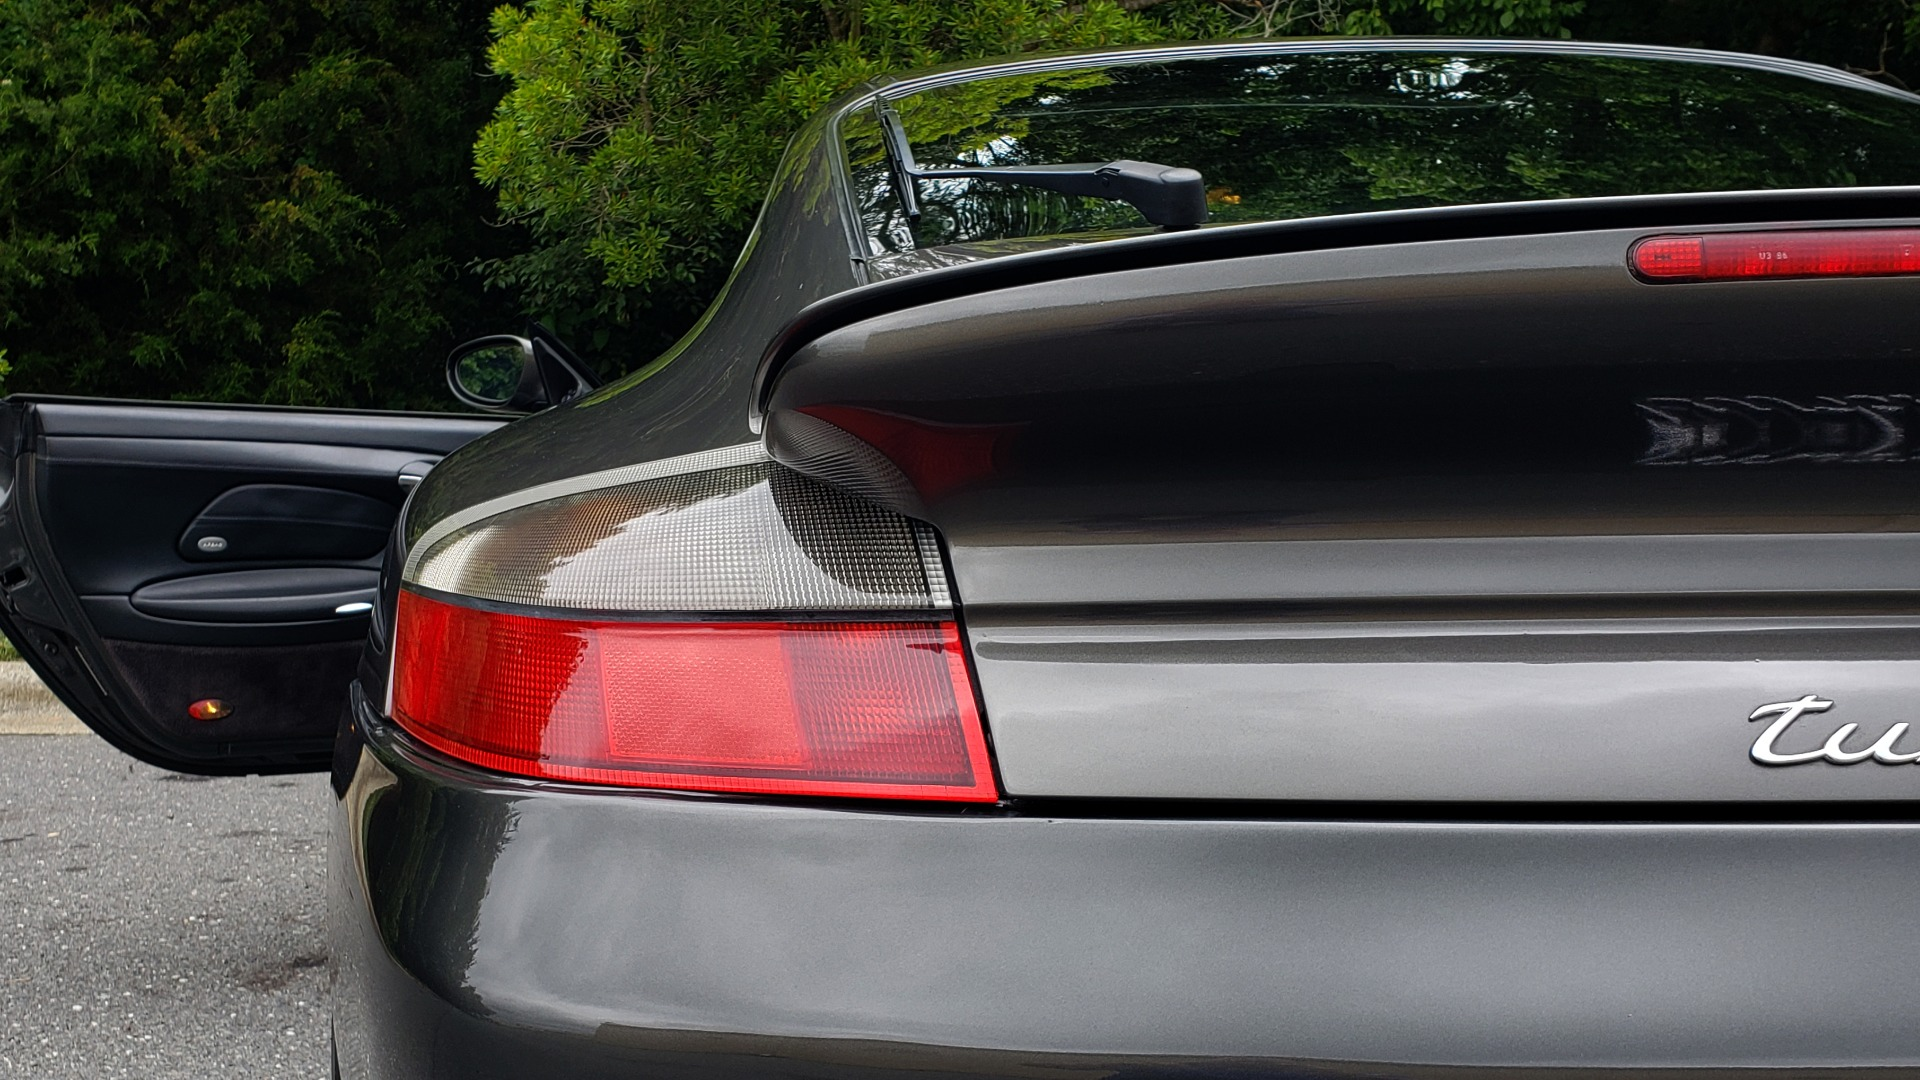 Used 2002 Porsche 911 CARRERA TURBO COUPE / 6-SPD MANUAL / PERF UPGRADES & CUSTOM TUNE for sale Sold at Formula Imports in Charlotte NC 28227 47